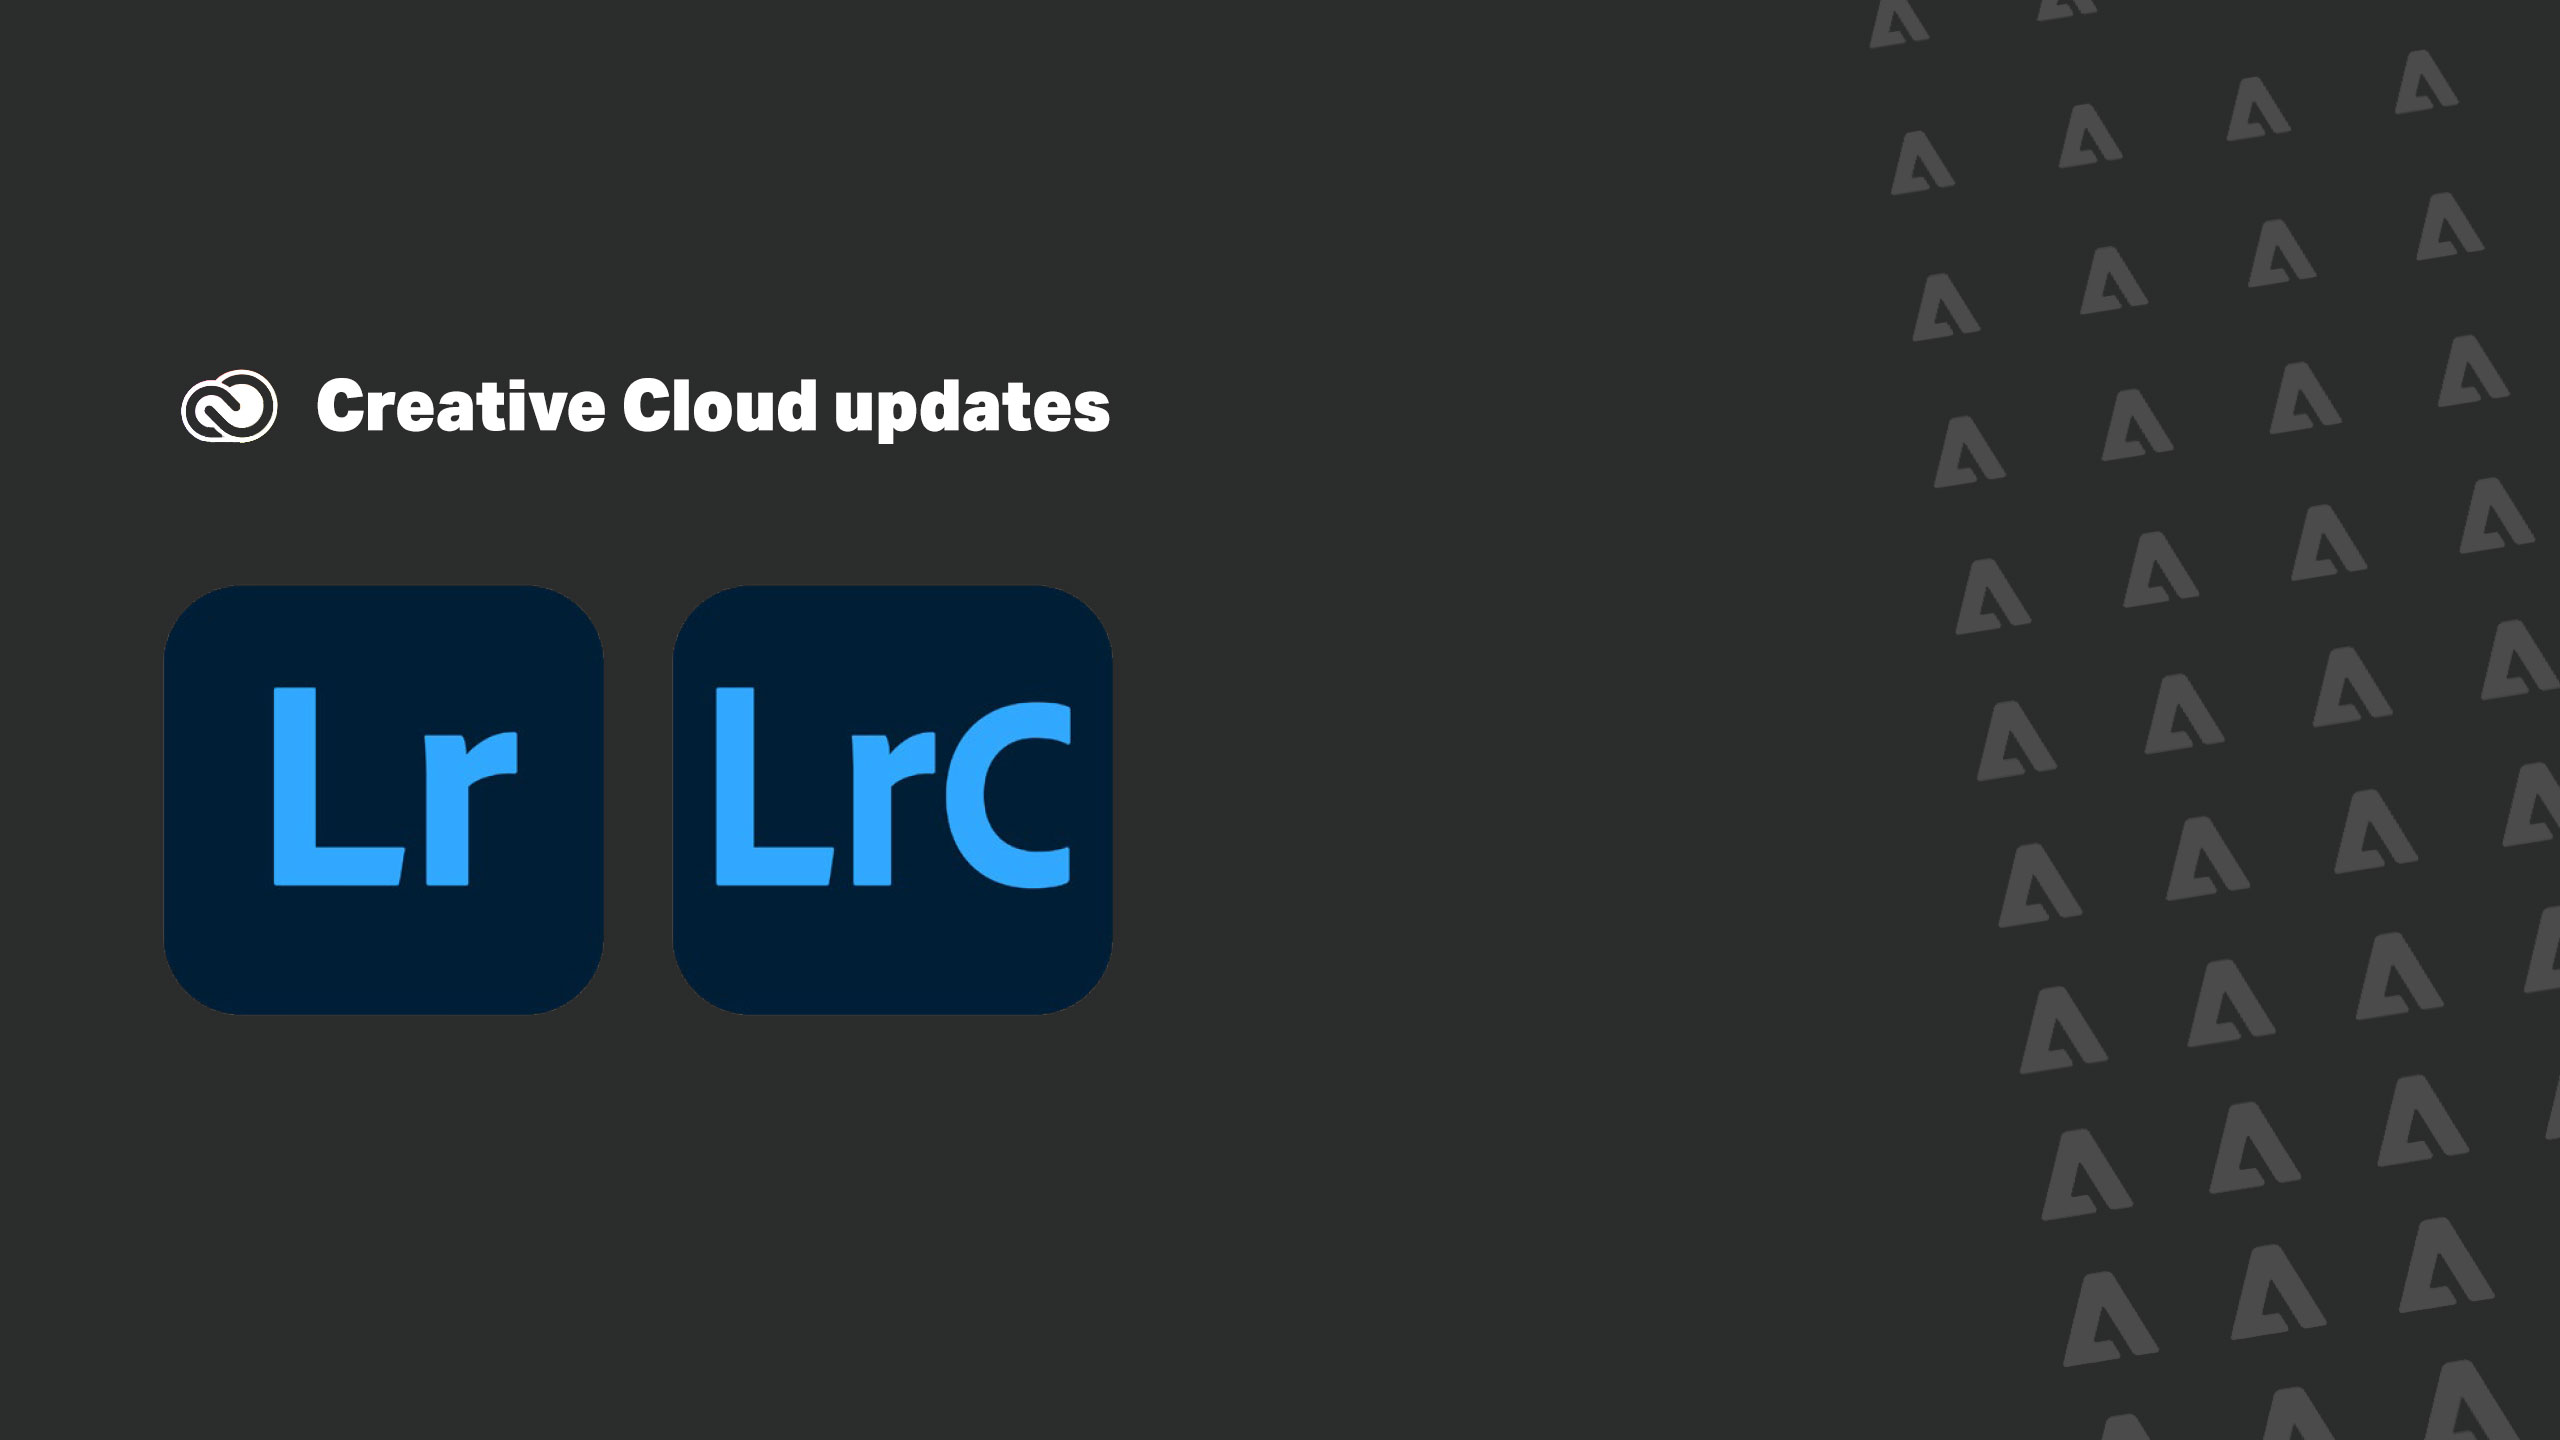 Lightroom ecosystem updates focus on precision and community